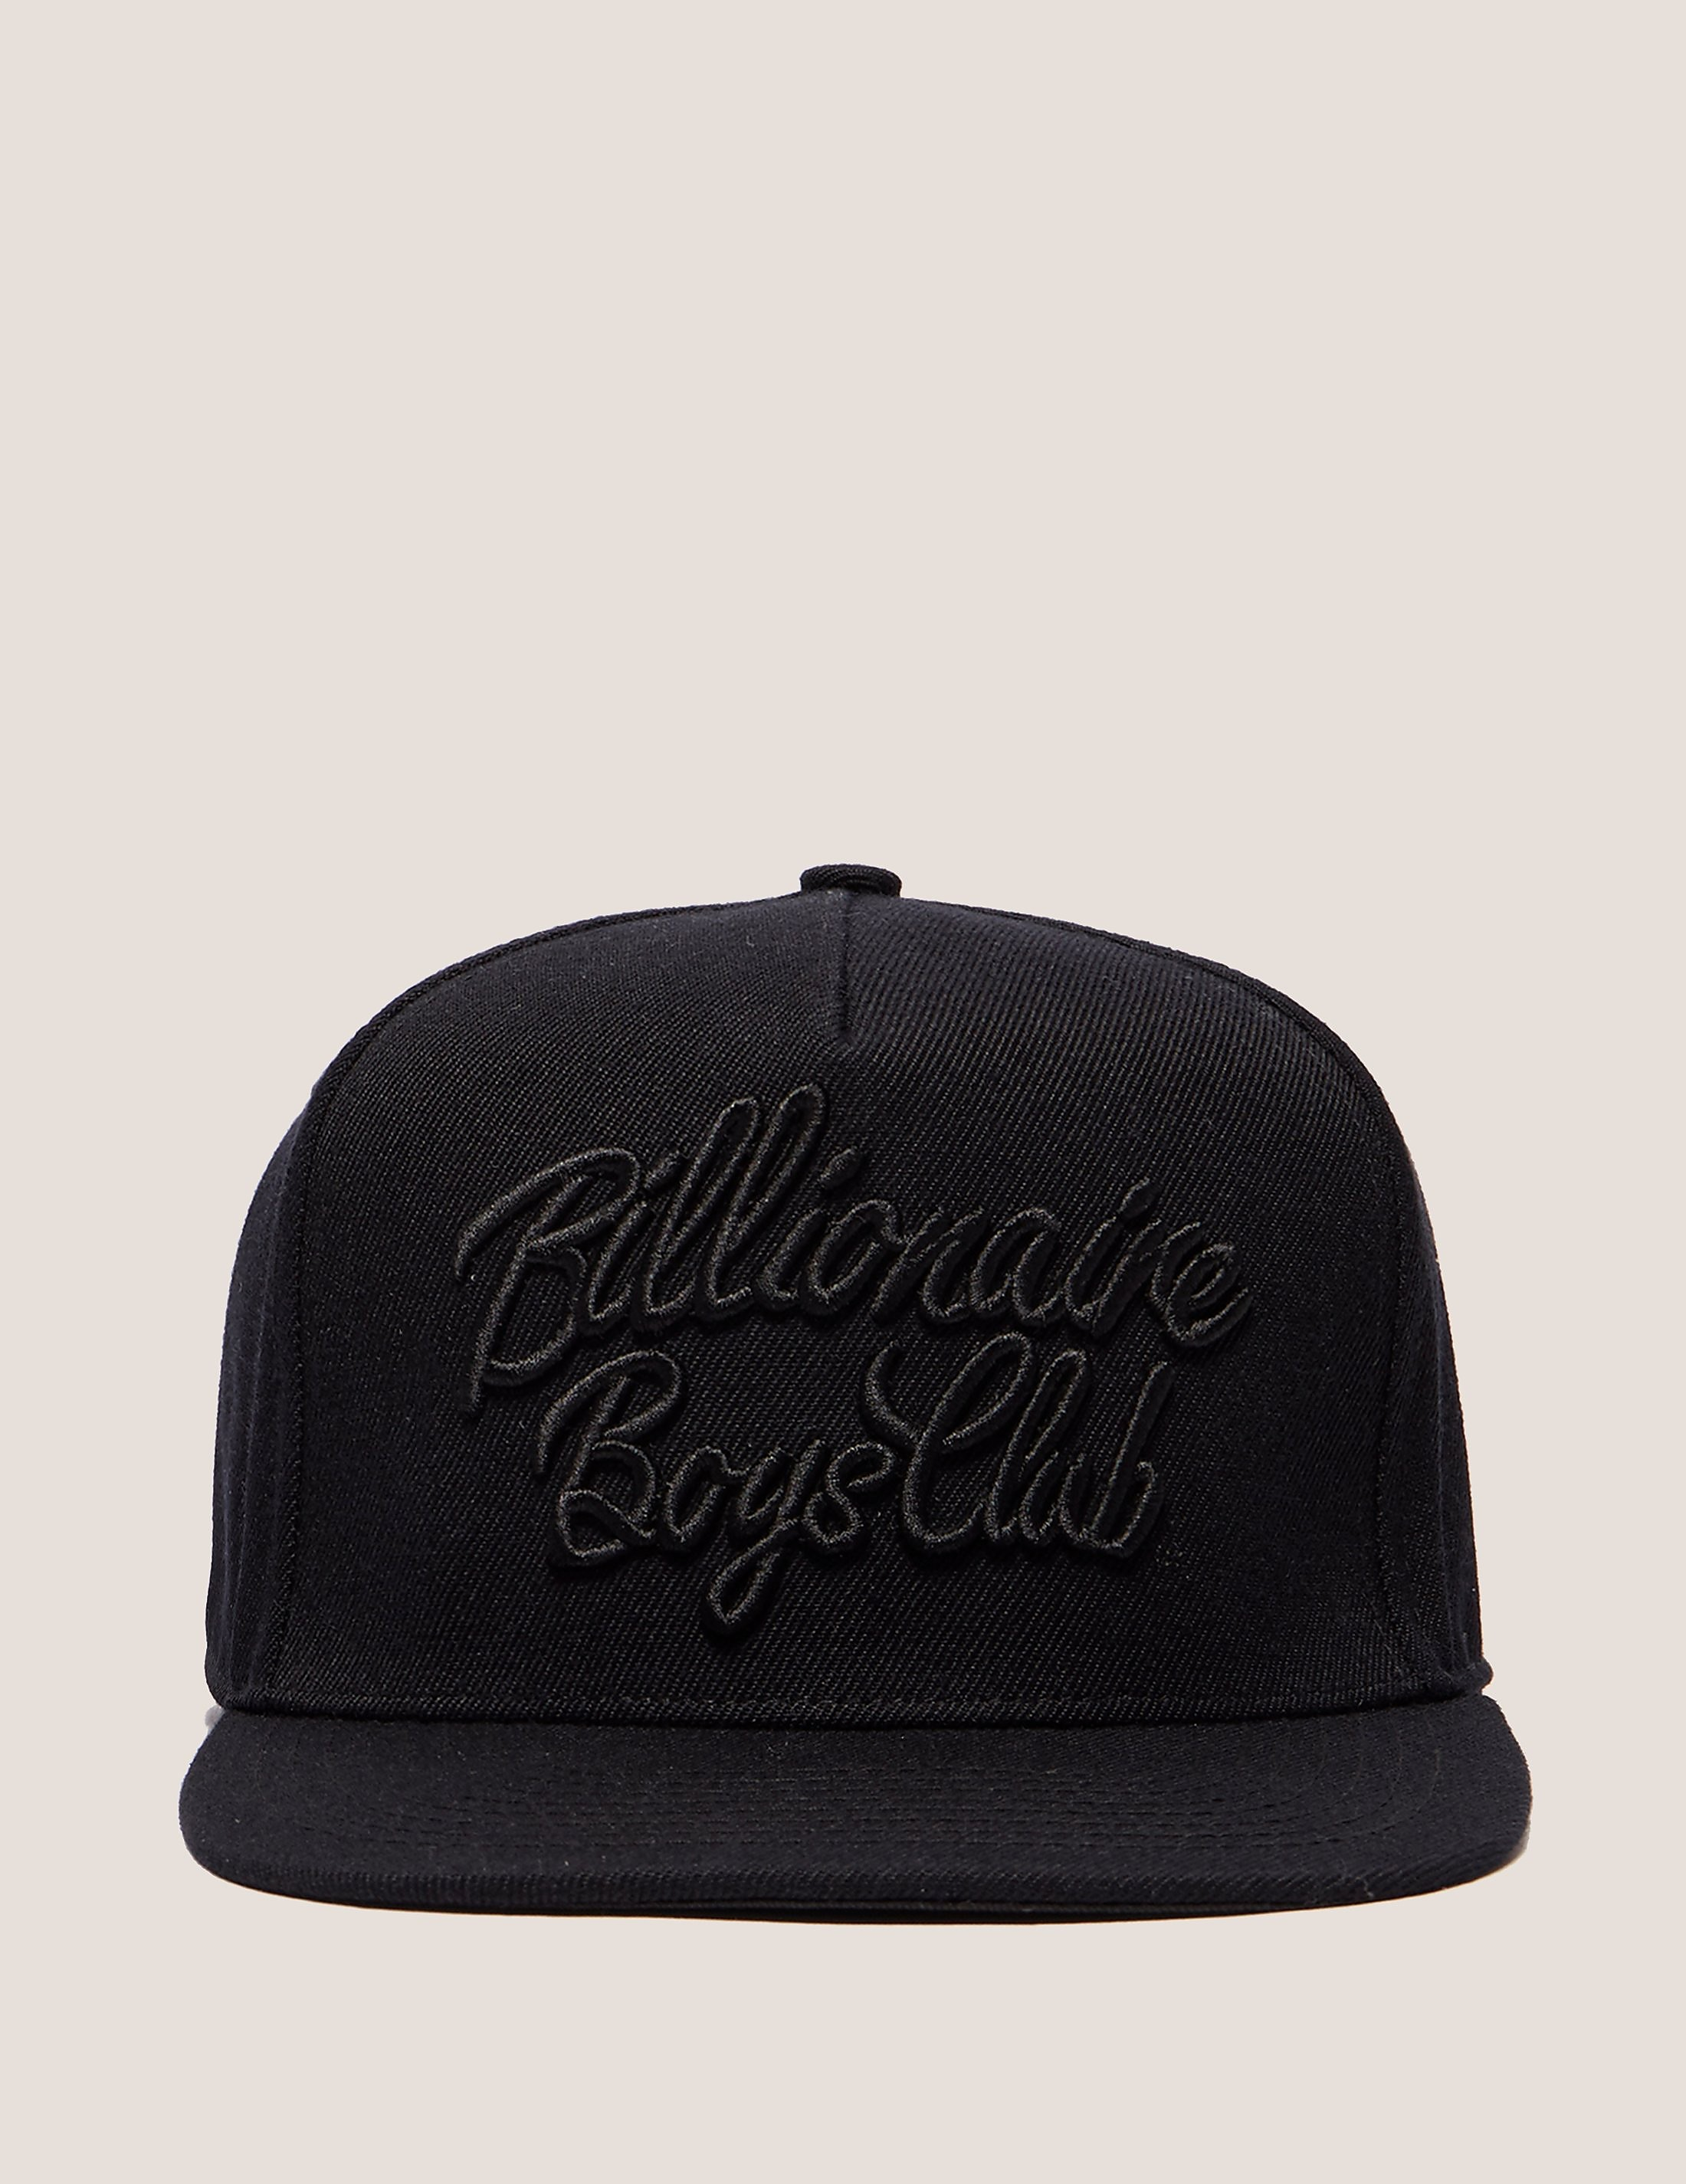 Billionaire Boys Club Logo Snapback